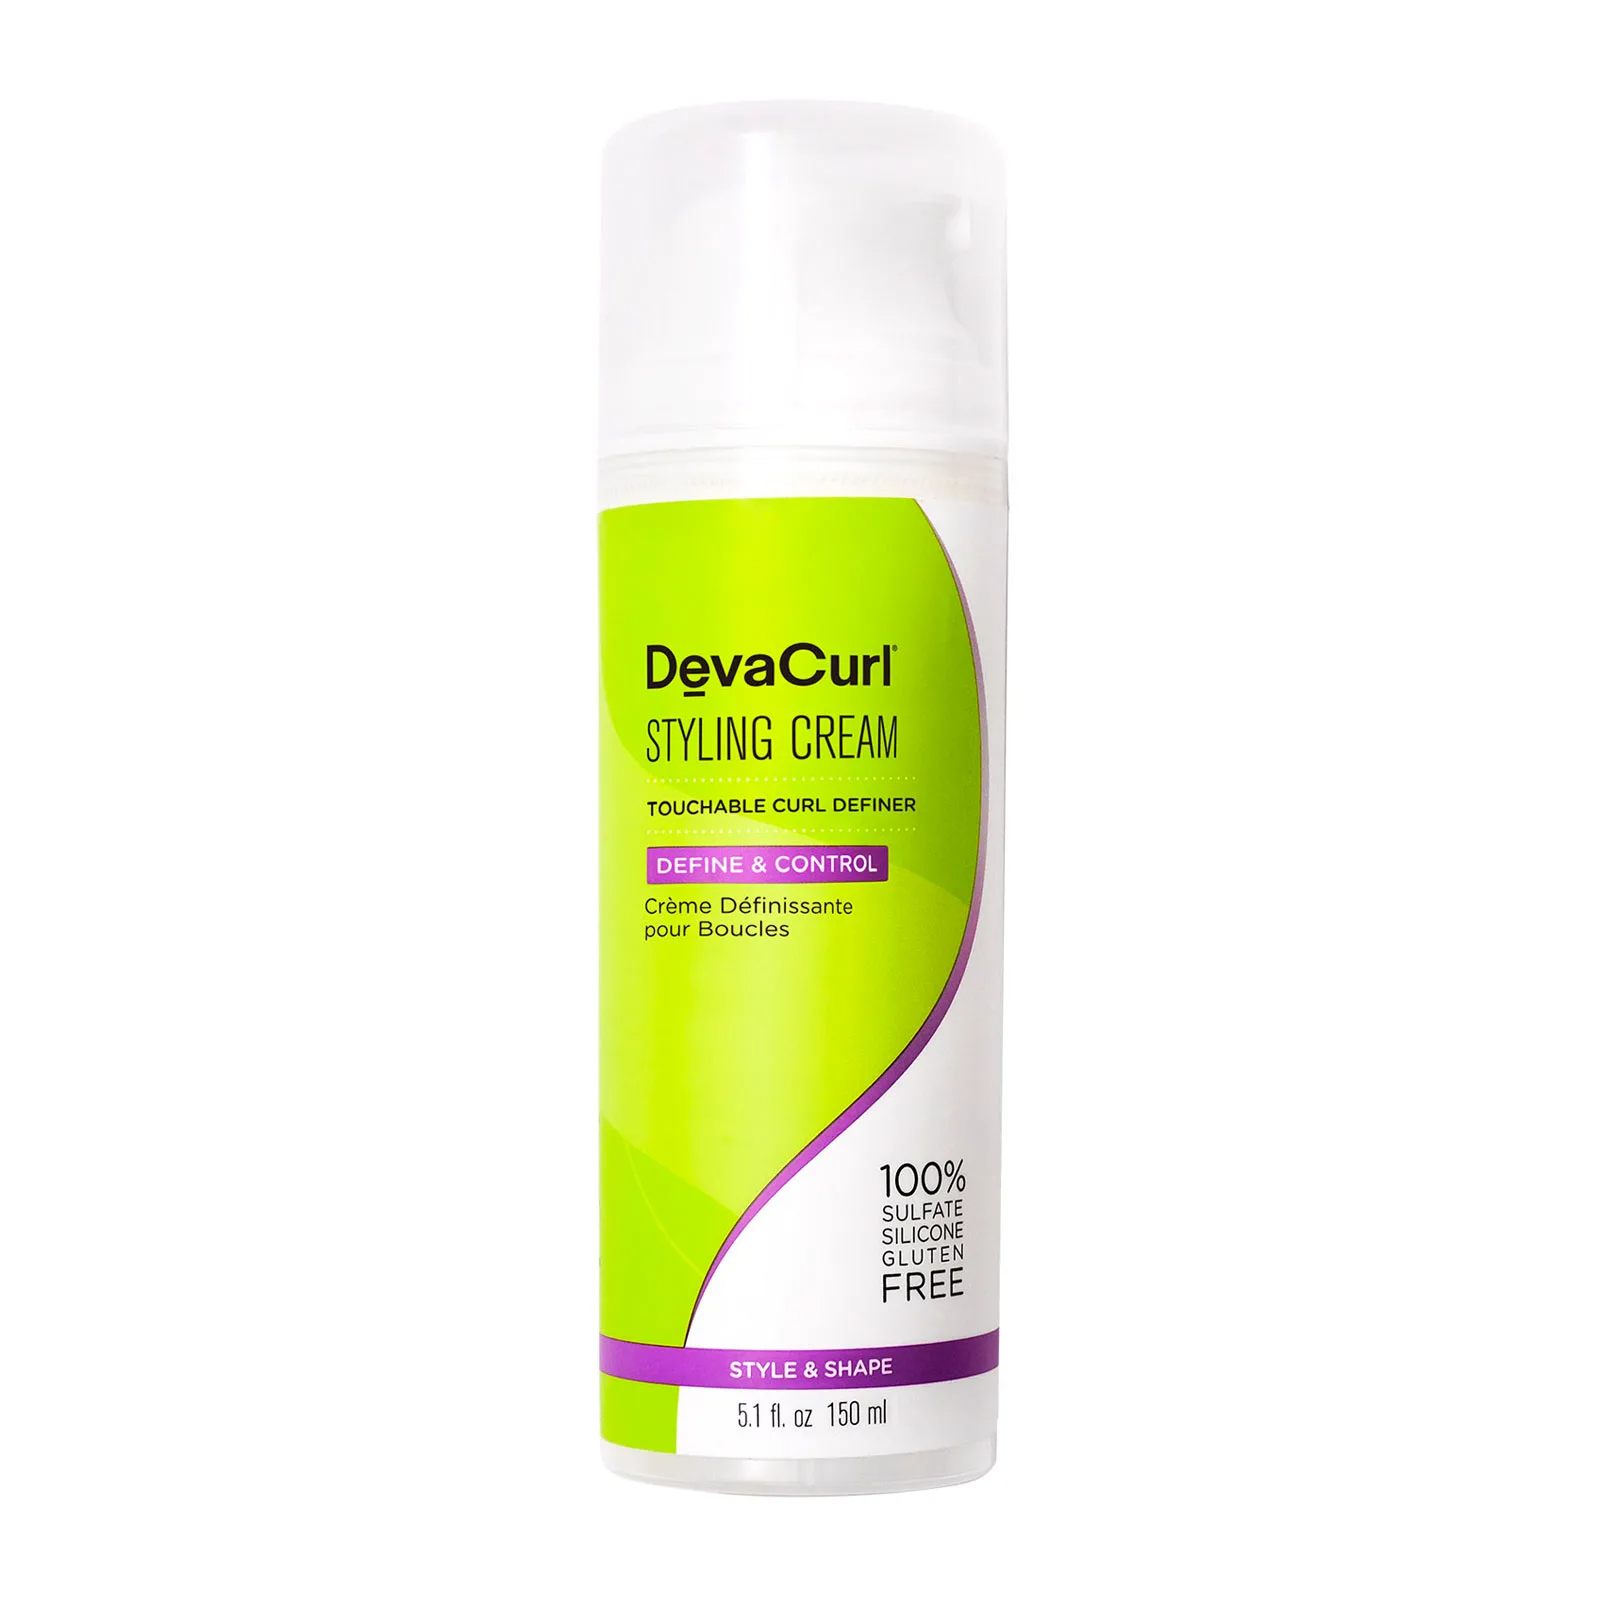 DevaCurl Styling Cream Touchable Curl Definer, Hair Care, London Loves Beauty